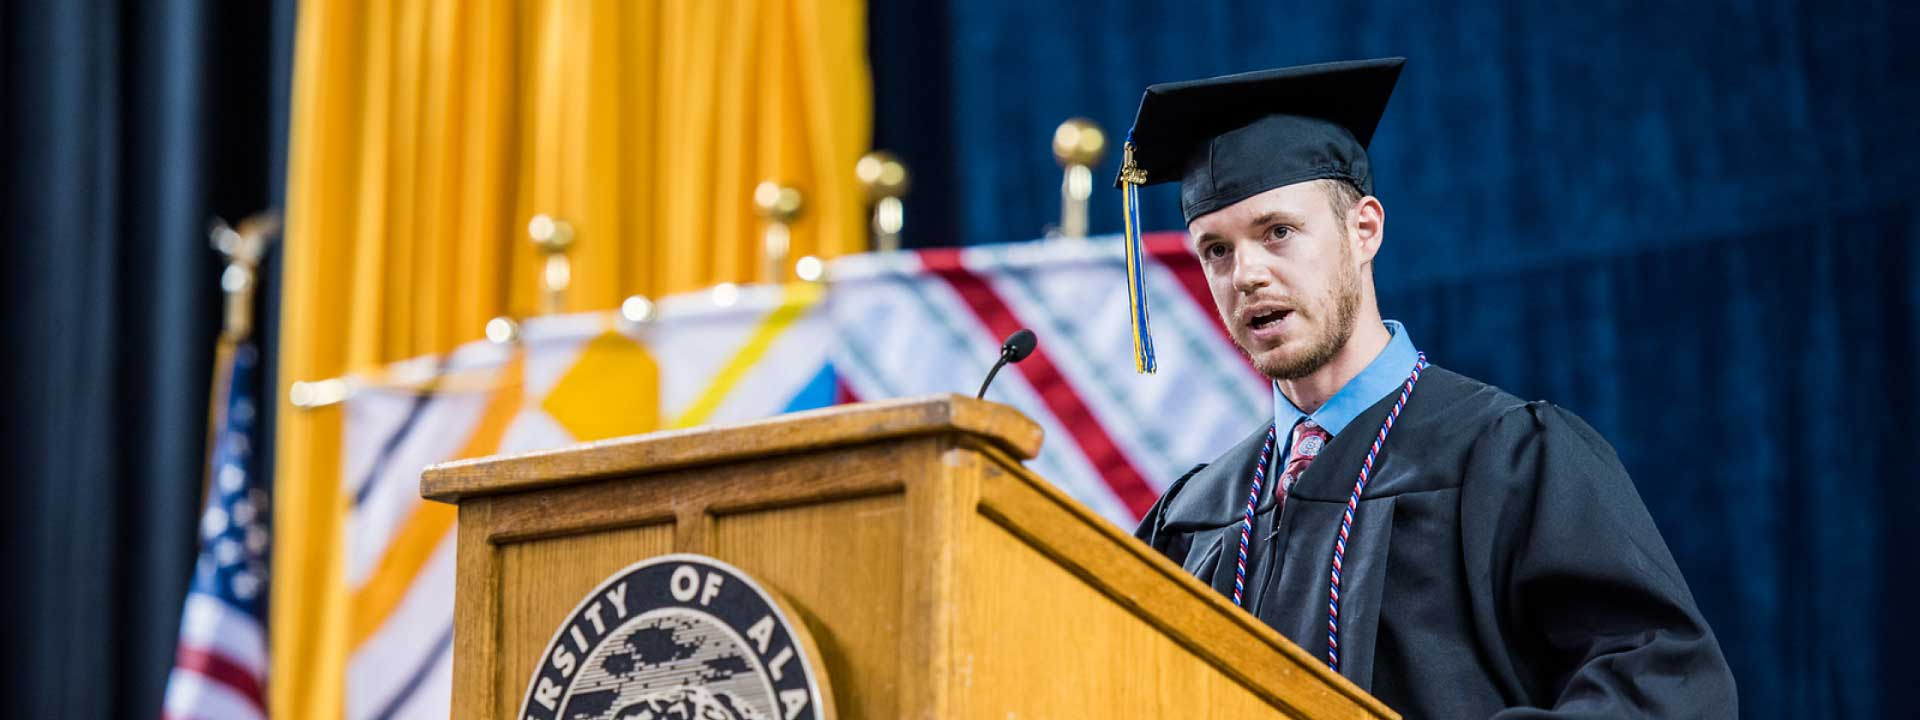 The 2018 student speaker gives their commencement address at the Carson Center